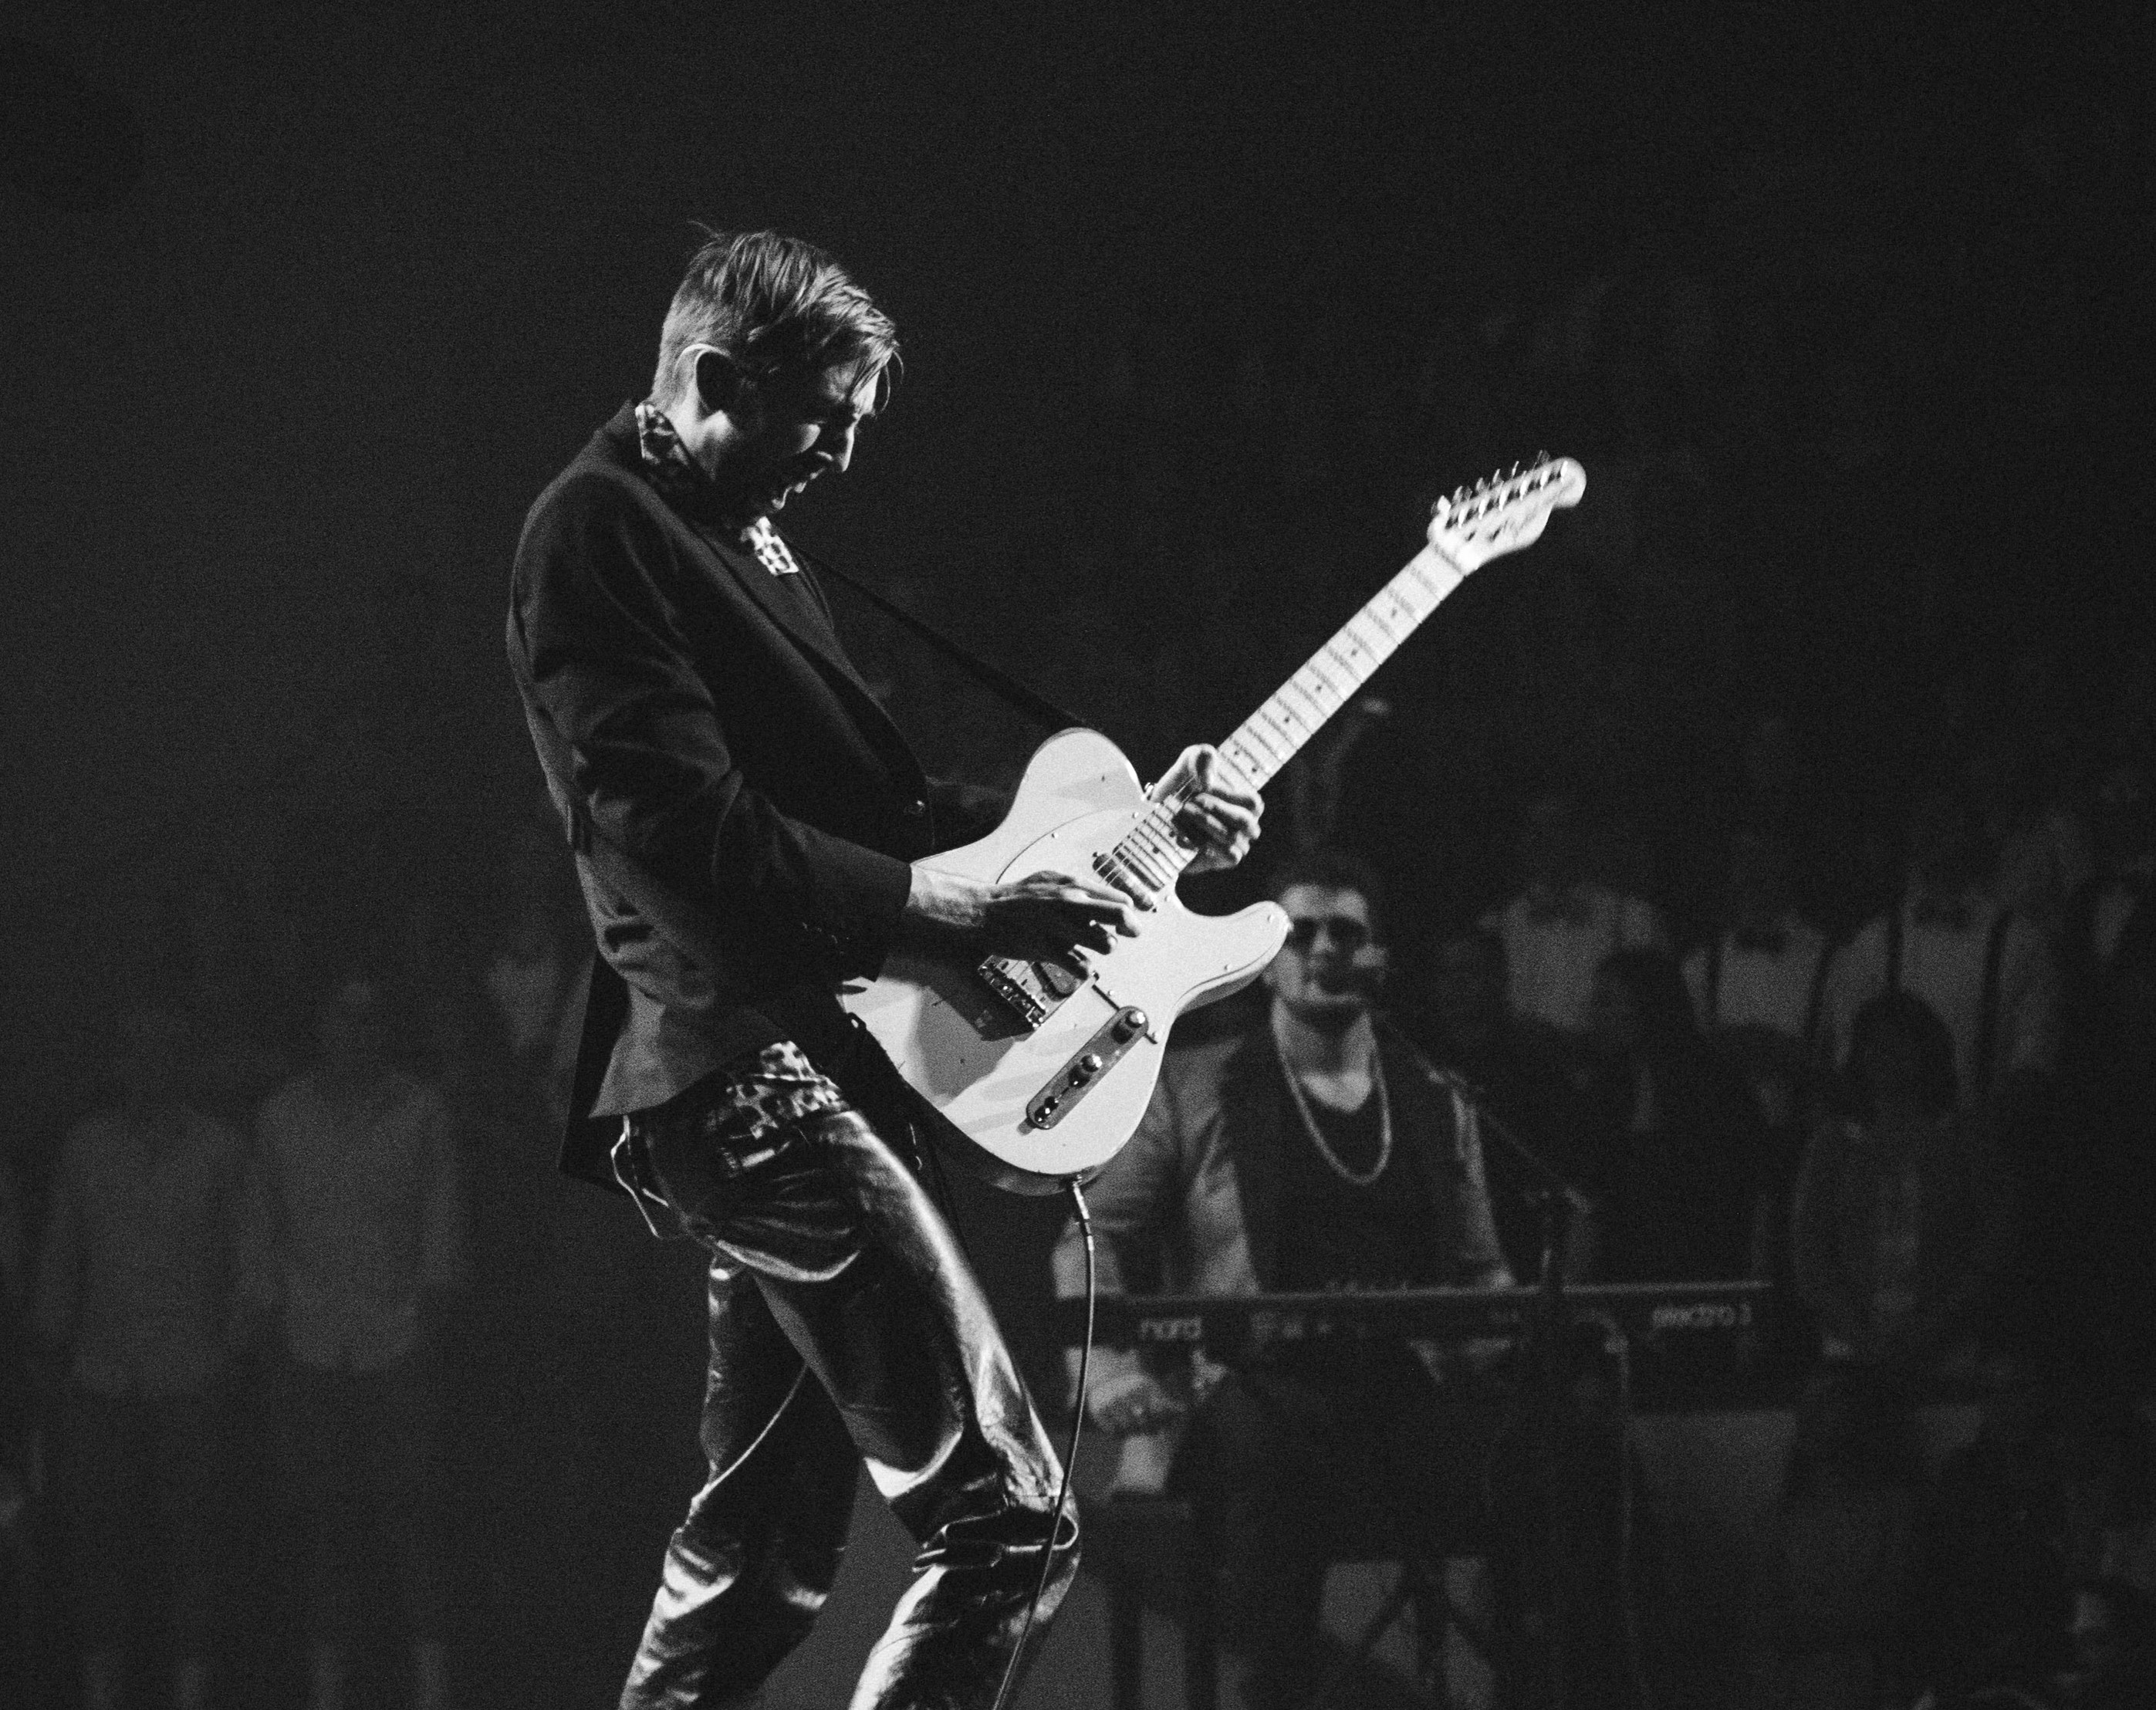 telecaster, on stage